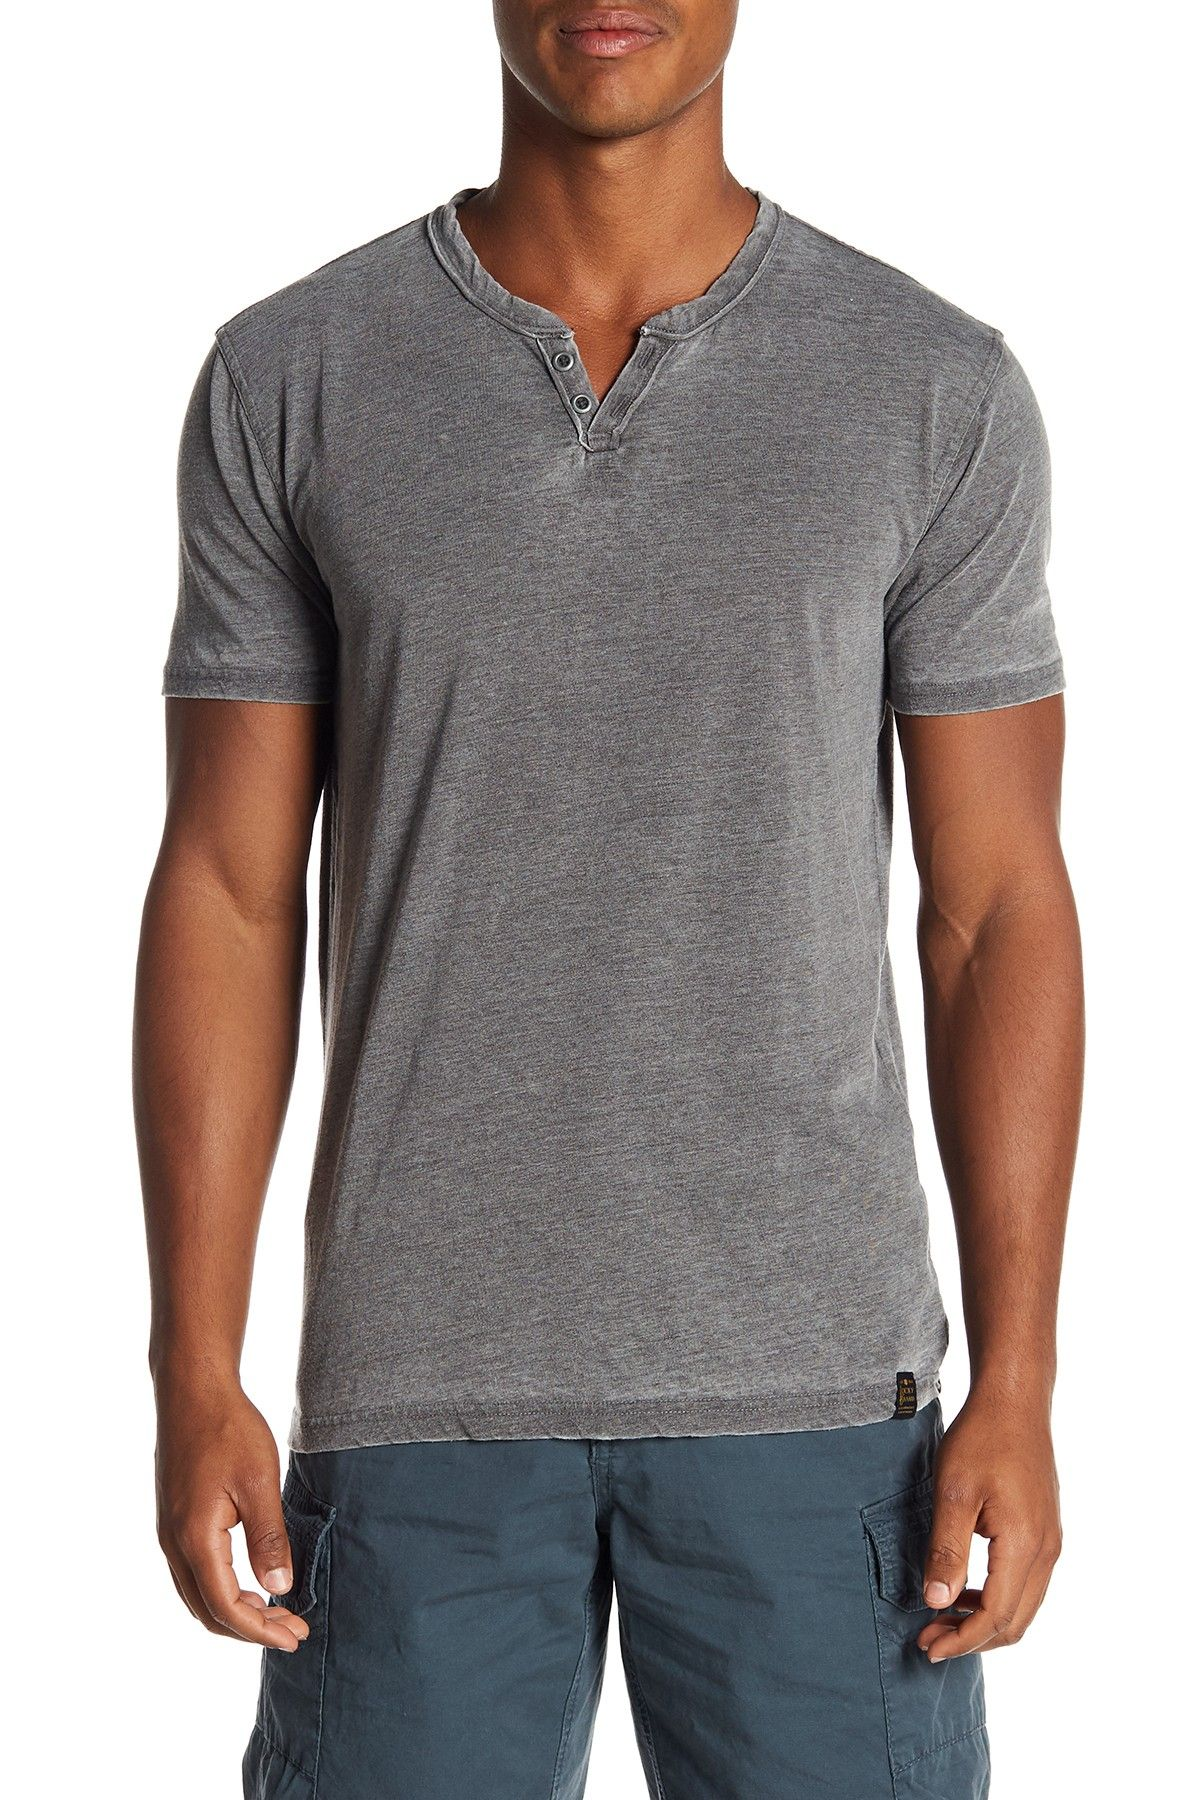 f5072f87a Image of Lucky Brand Short Sleeve Solid Knit Tee Vintage Shorts, Tees,  Shirts,